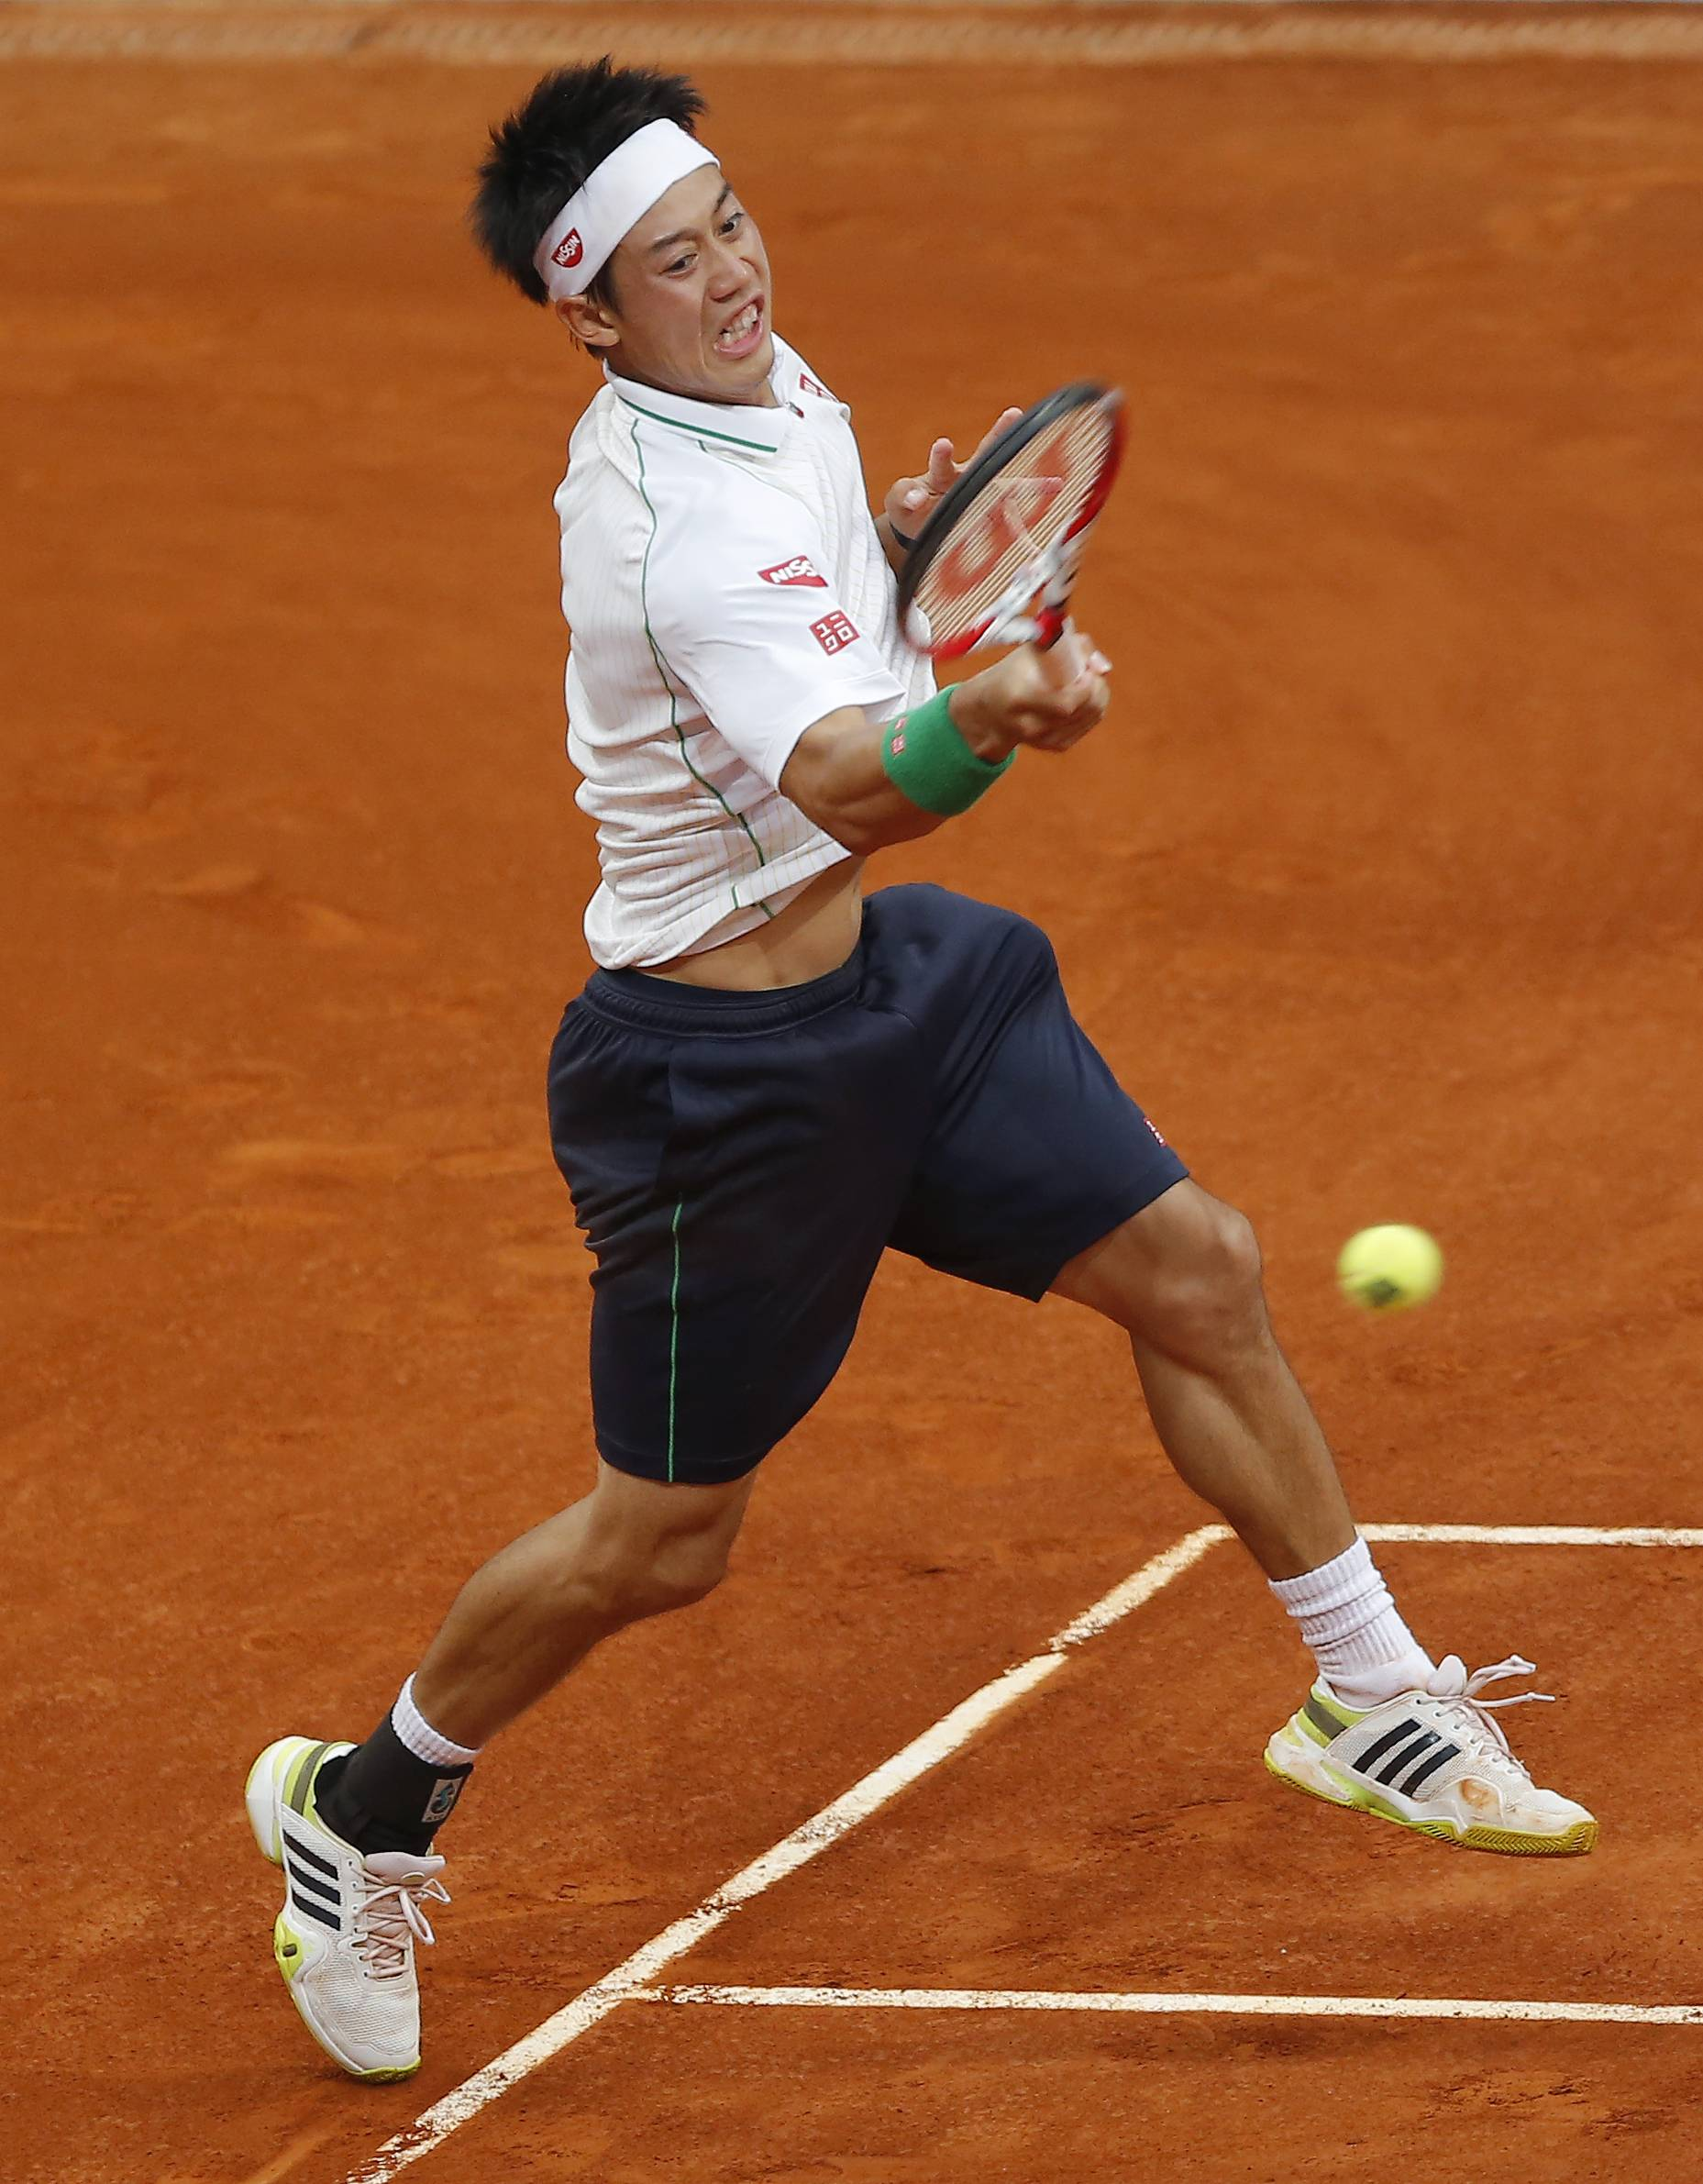 Kei Nishikori from Japan returns the ball during a Madrid Open tennis tournament match against Guillermo Garcia-Lopez from Spain, in Madrid, Spain, Tuesday, May 6, 2014.